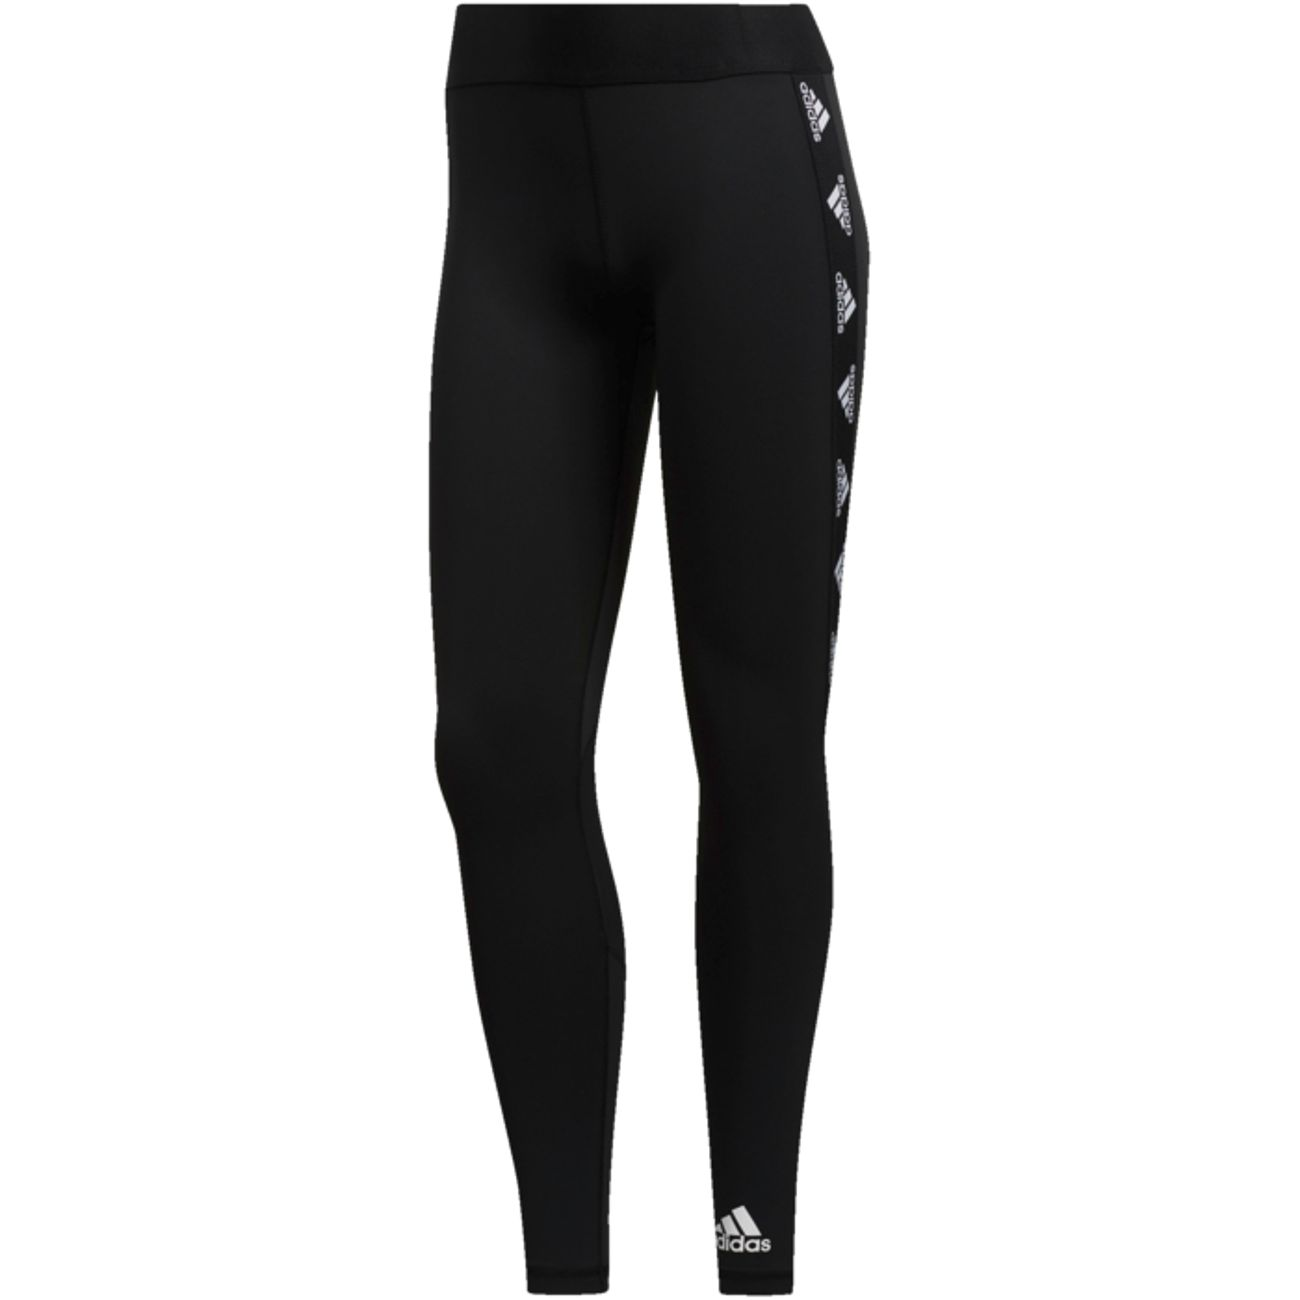 LEGGING  femme ADIDAS TIGHT ALPHASKIN BADGE OF SPORT